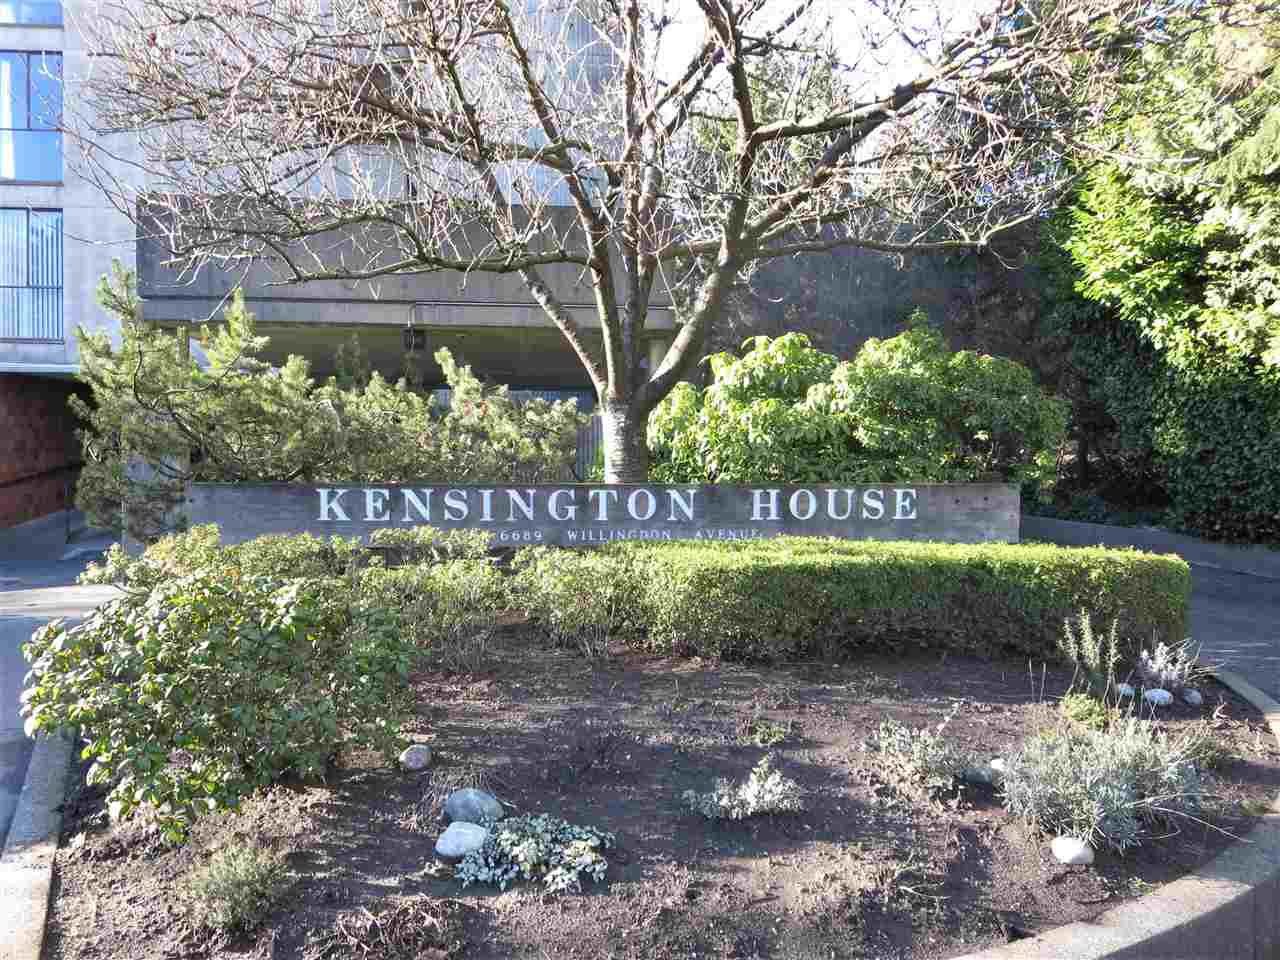 """Main Photo: 201 6689 WILLINGDON Avenue in Burnaby: Metrotown Condo for sale in """"KENSINGTON HOUSE"""" (Burnaby South)  : MLS®# R2316399"""